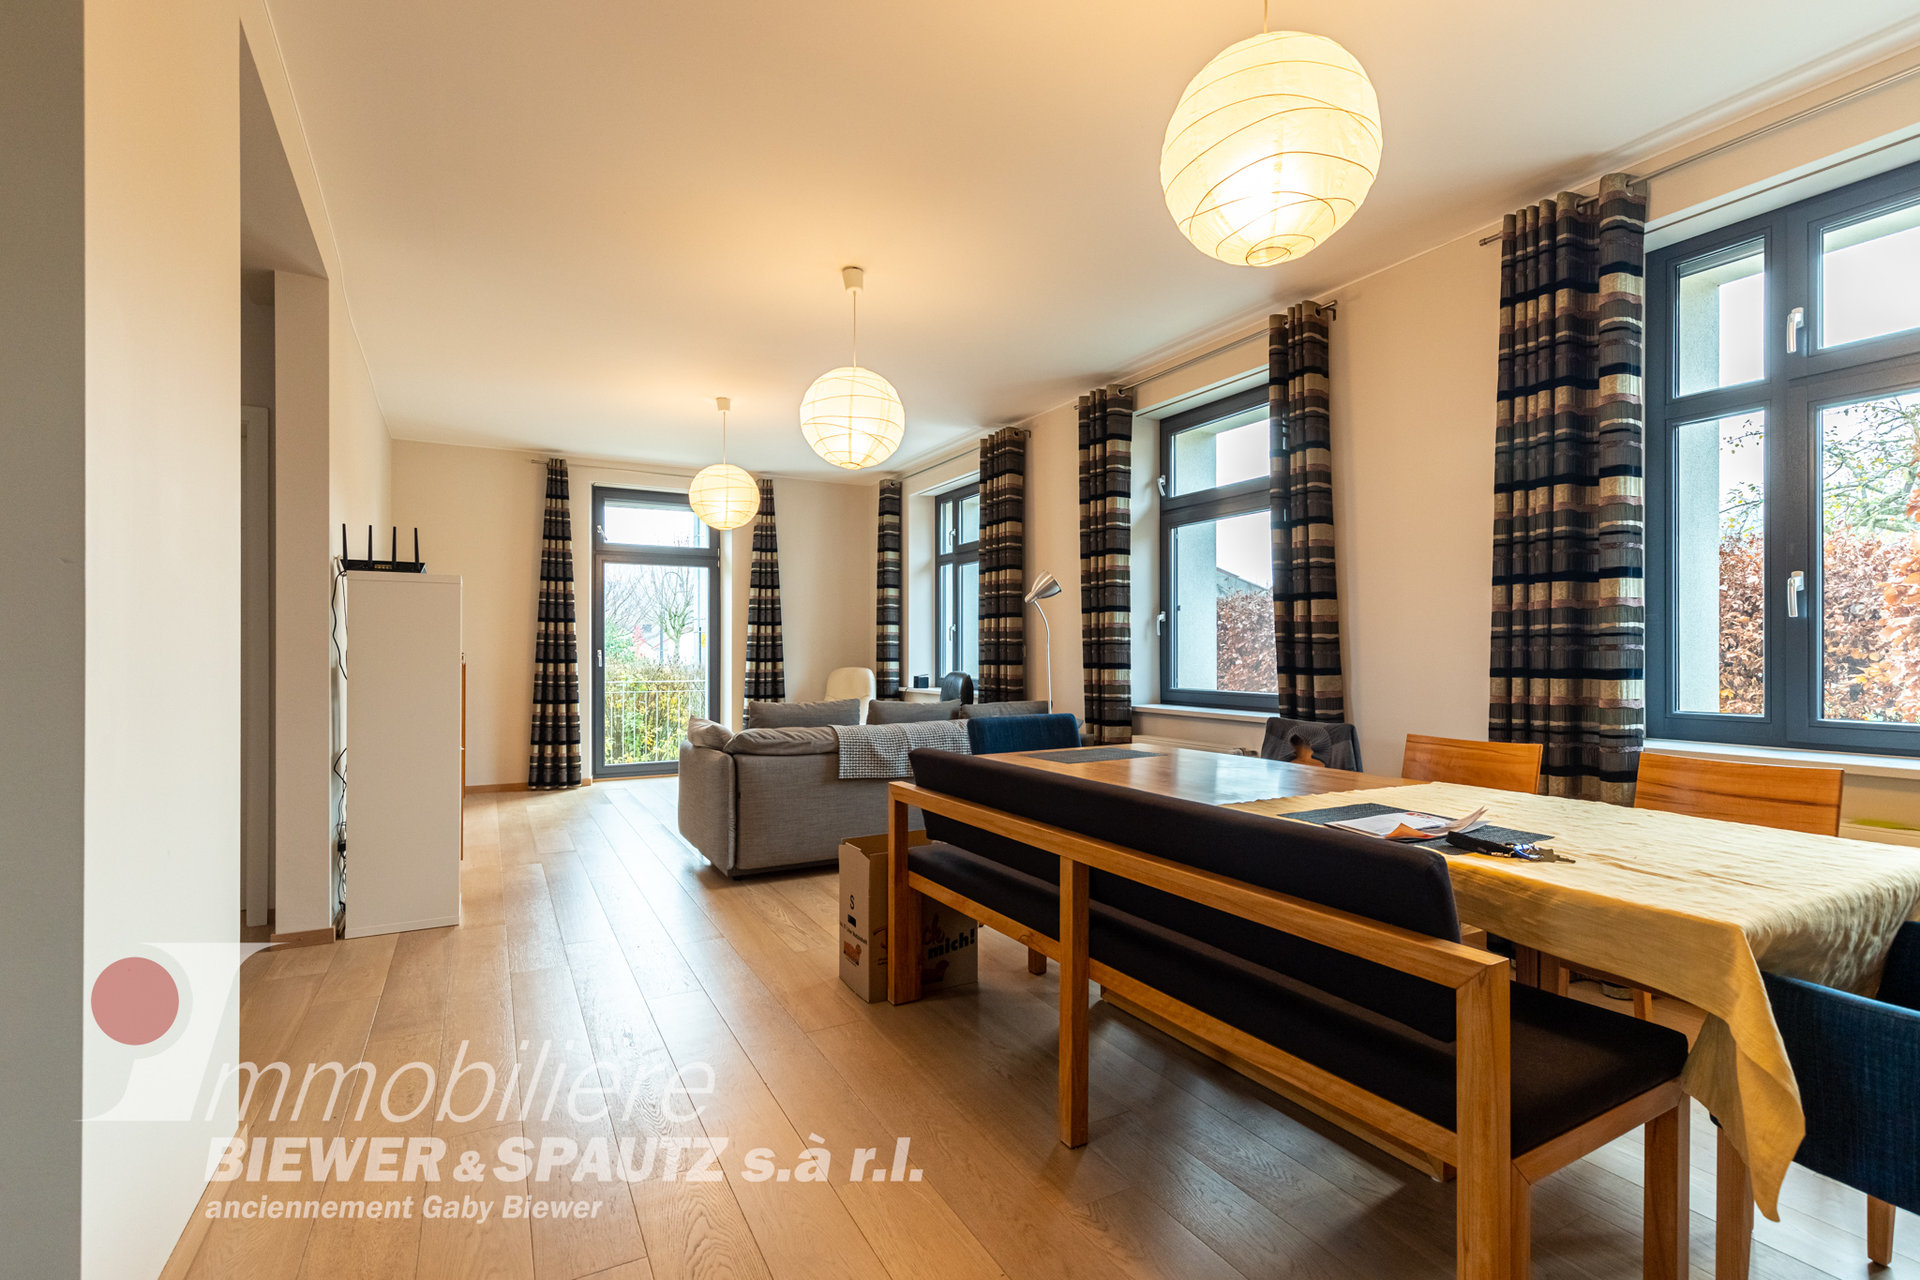 FOR RENT - house with 4 bedrooms in Steinheim